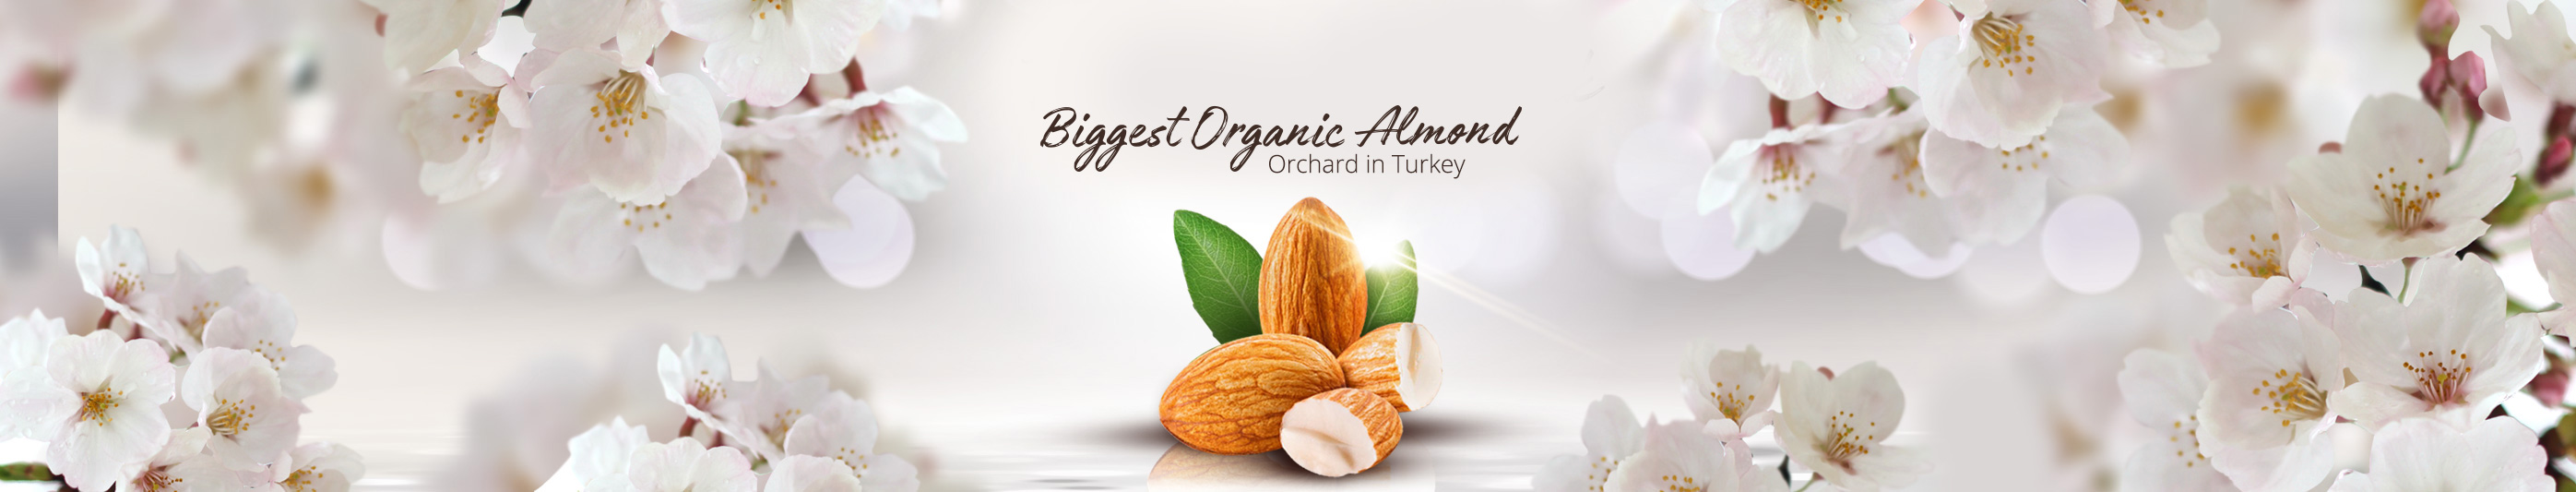 The Biggest Organic Almond Orchard In Turkey